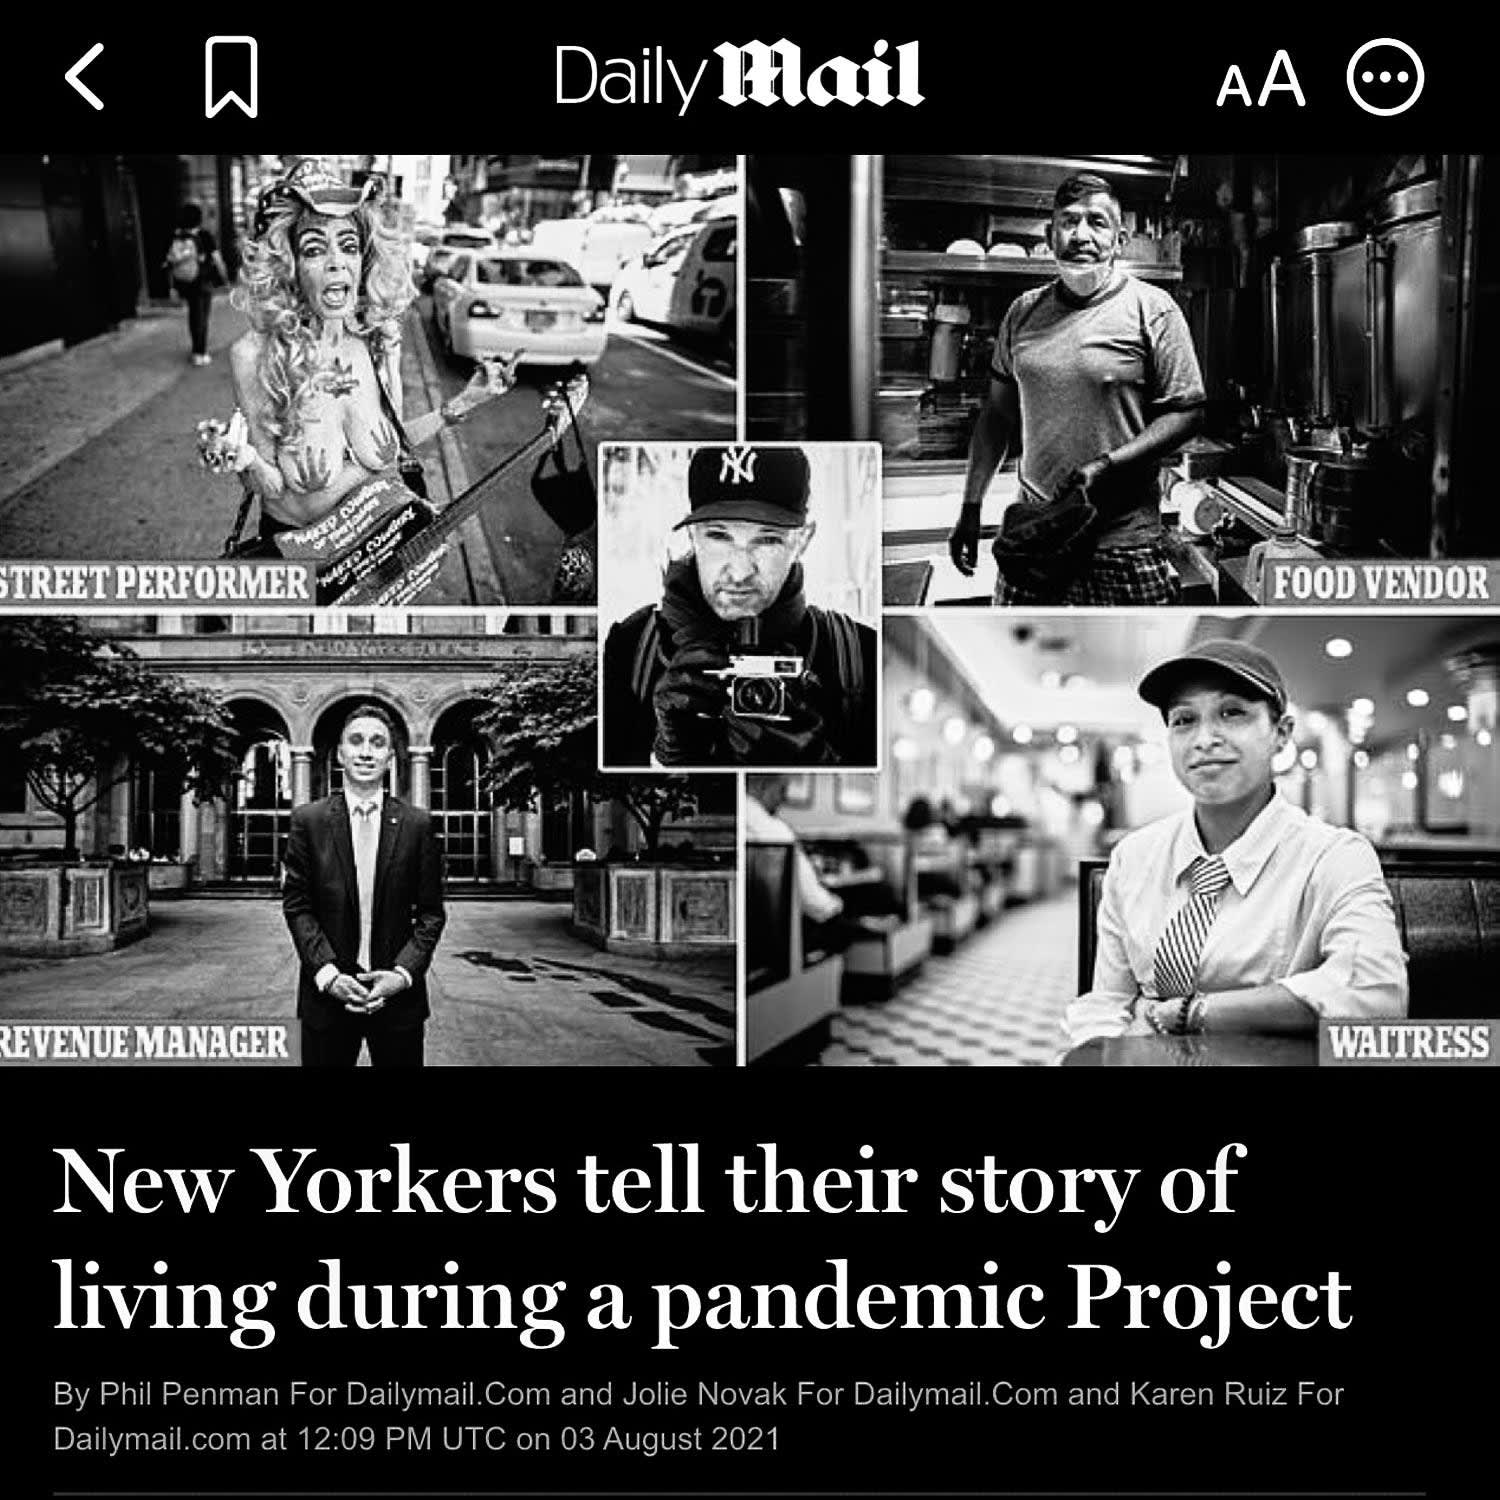 DAILY MAIL: Life During a Pandemic